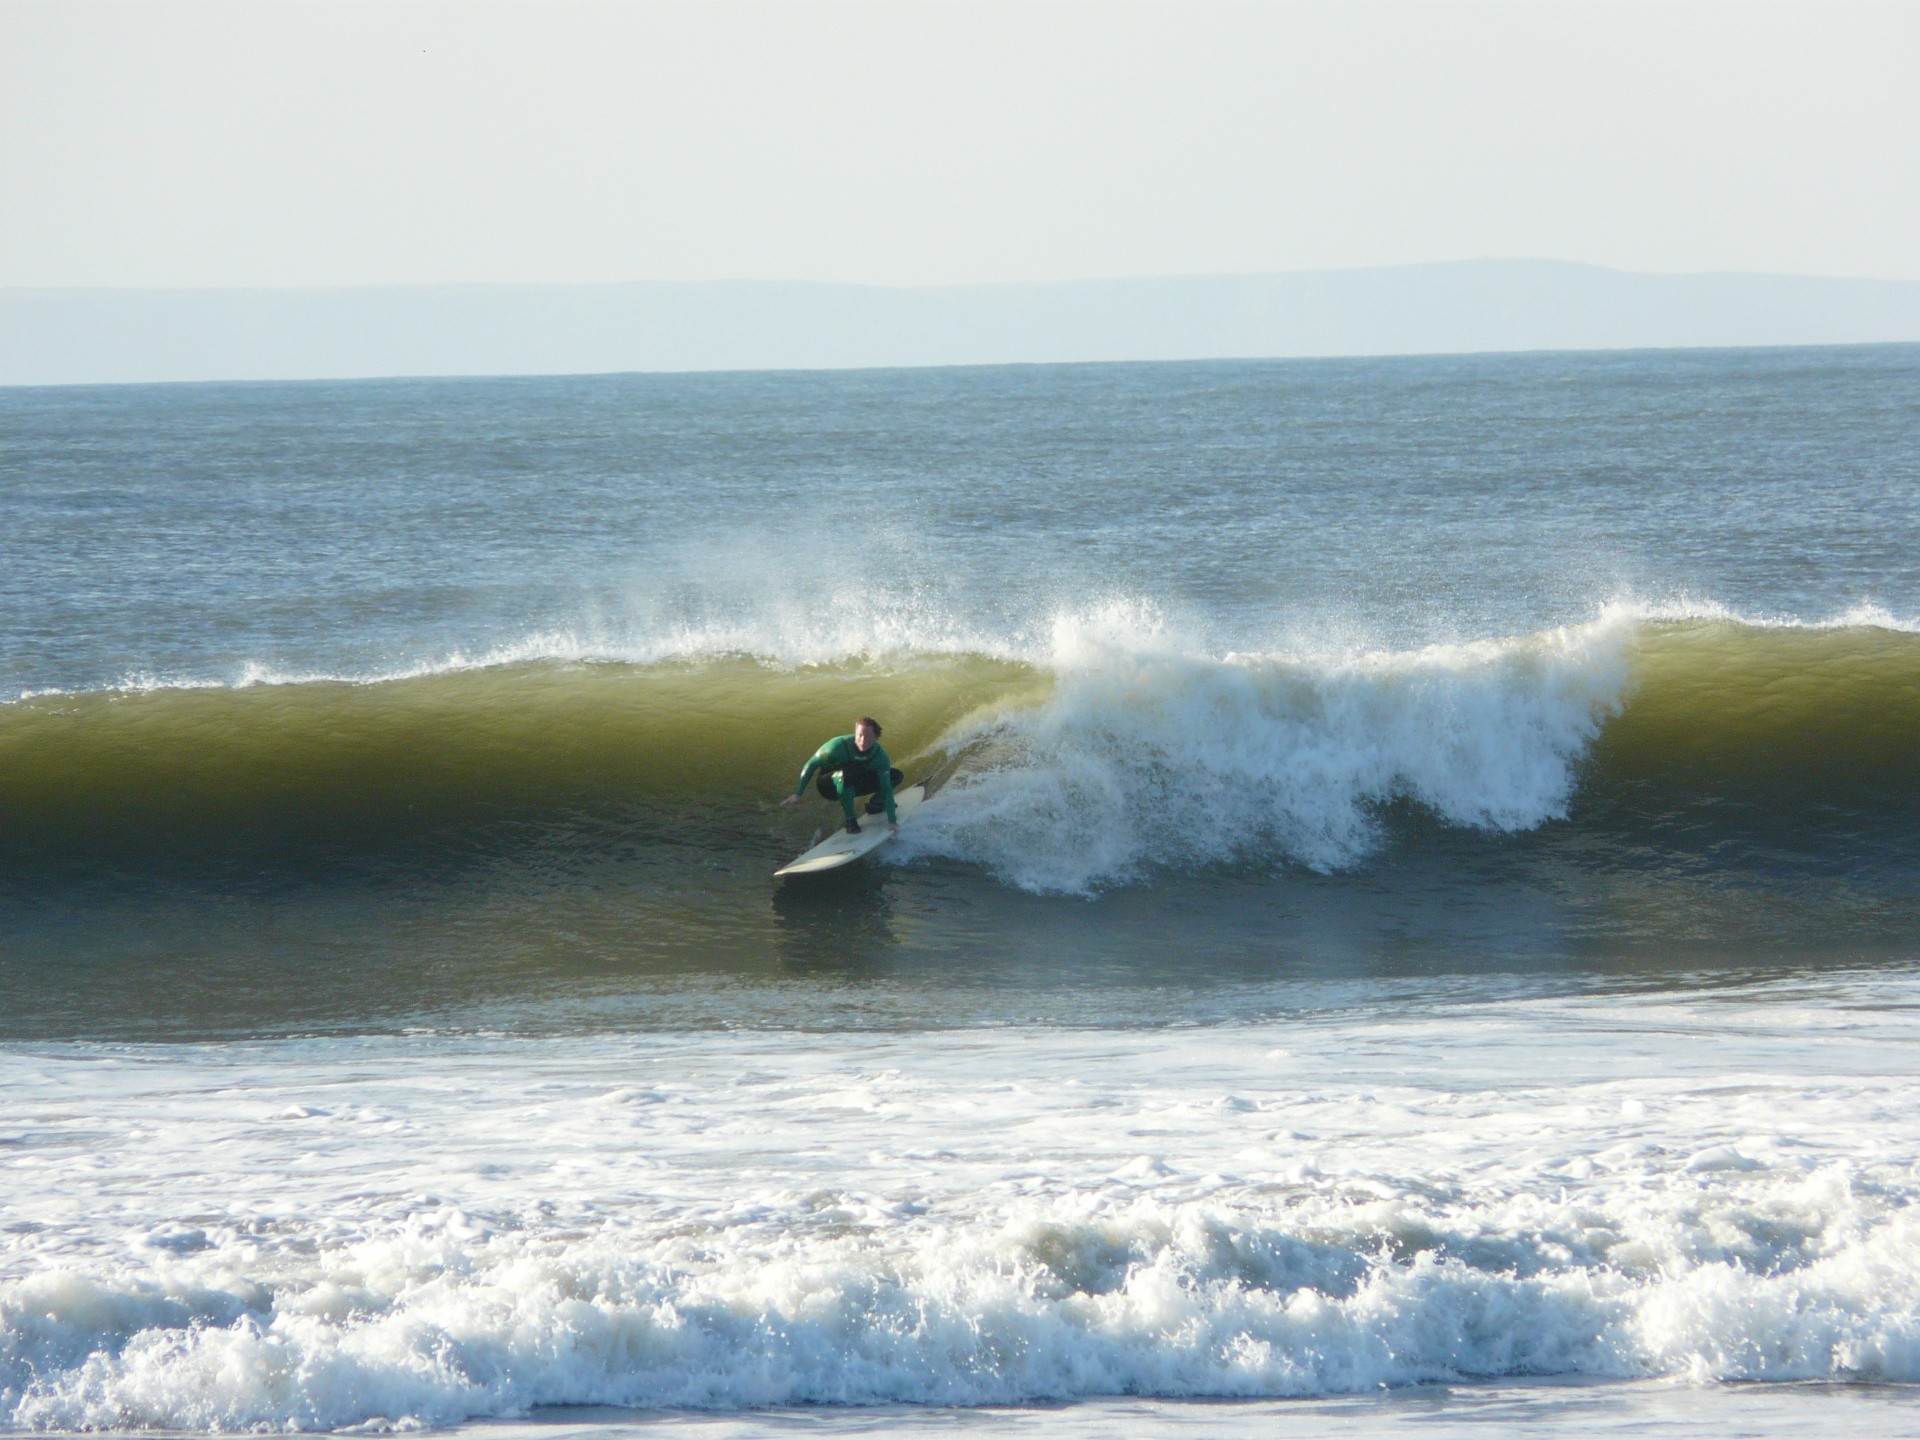 Tricky's photo of Croyde Beach